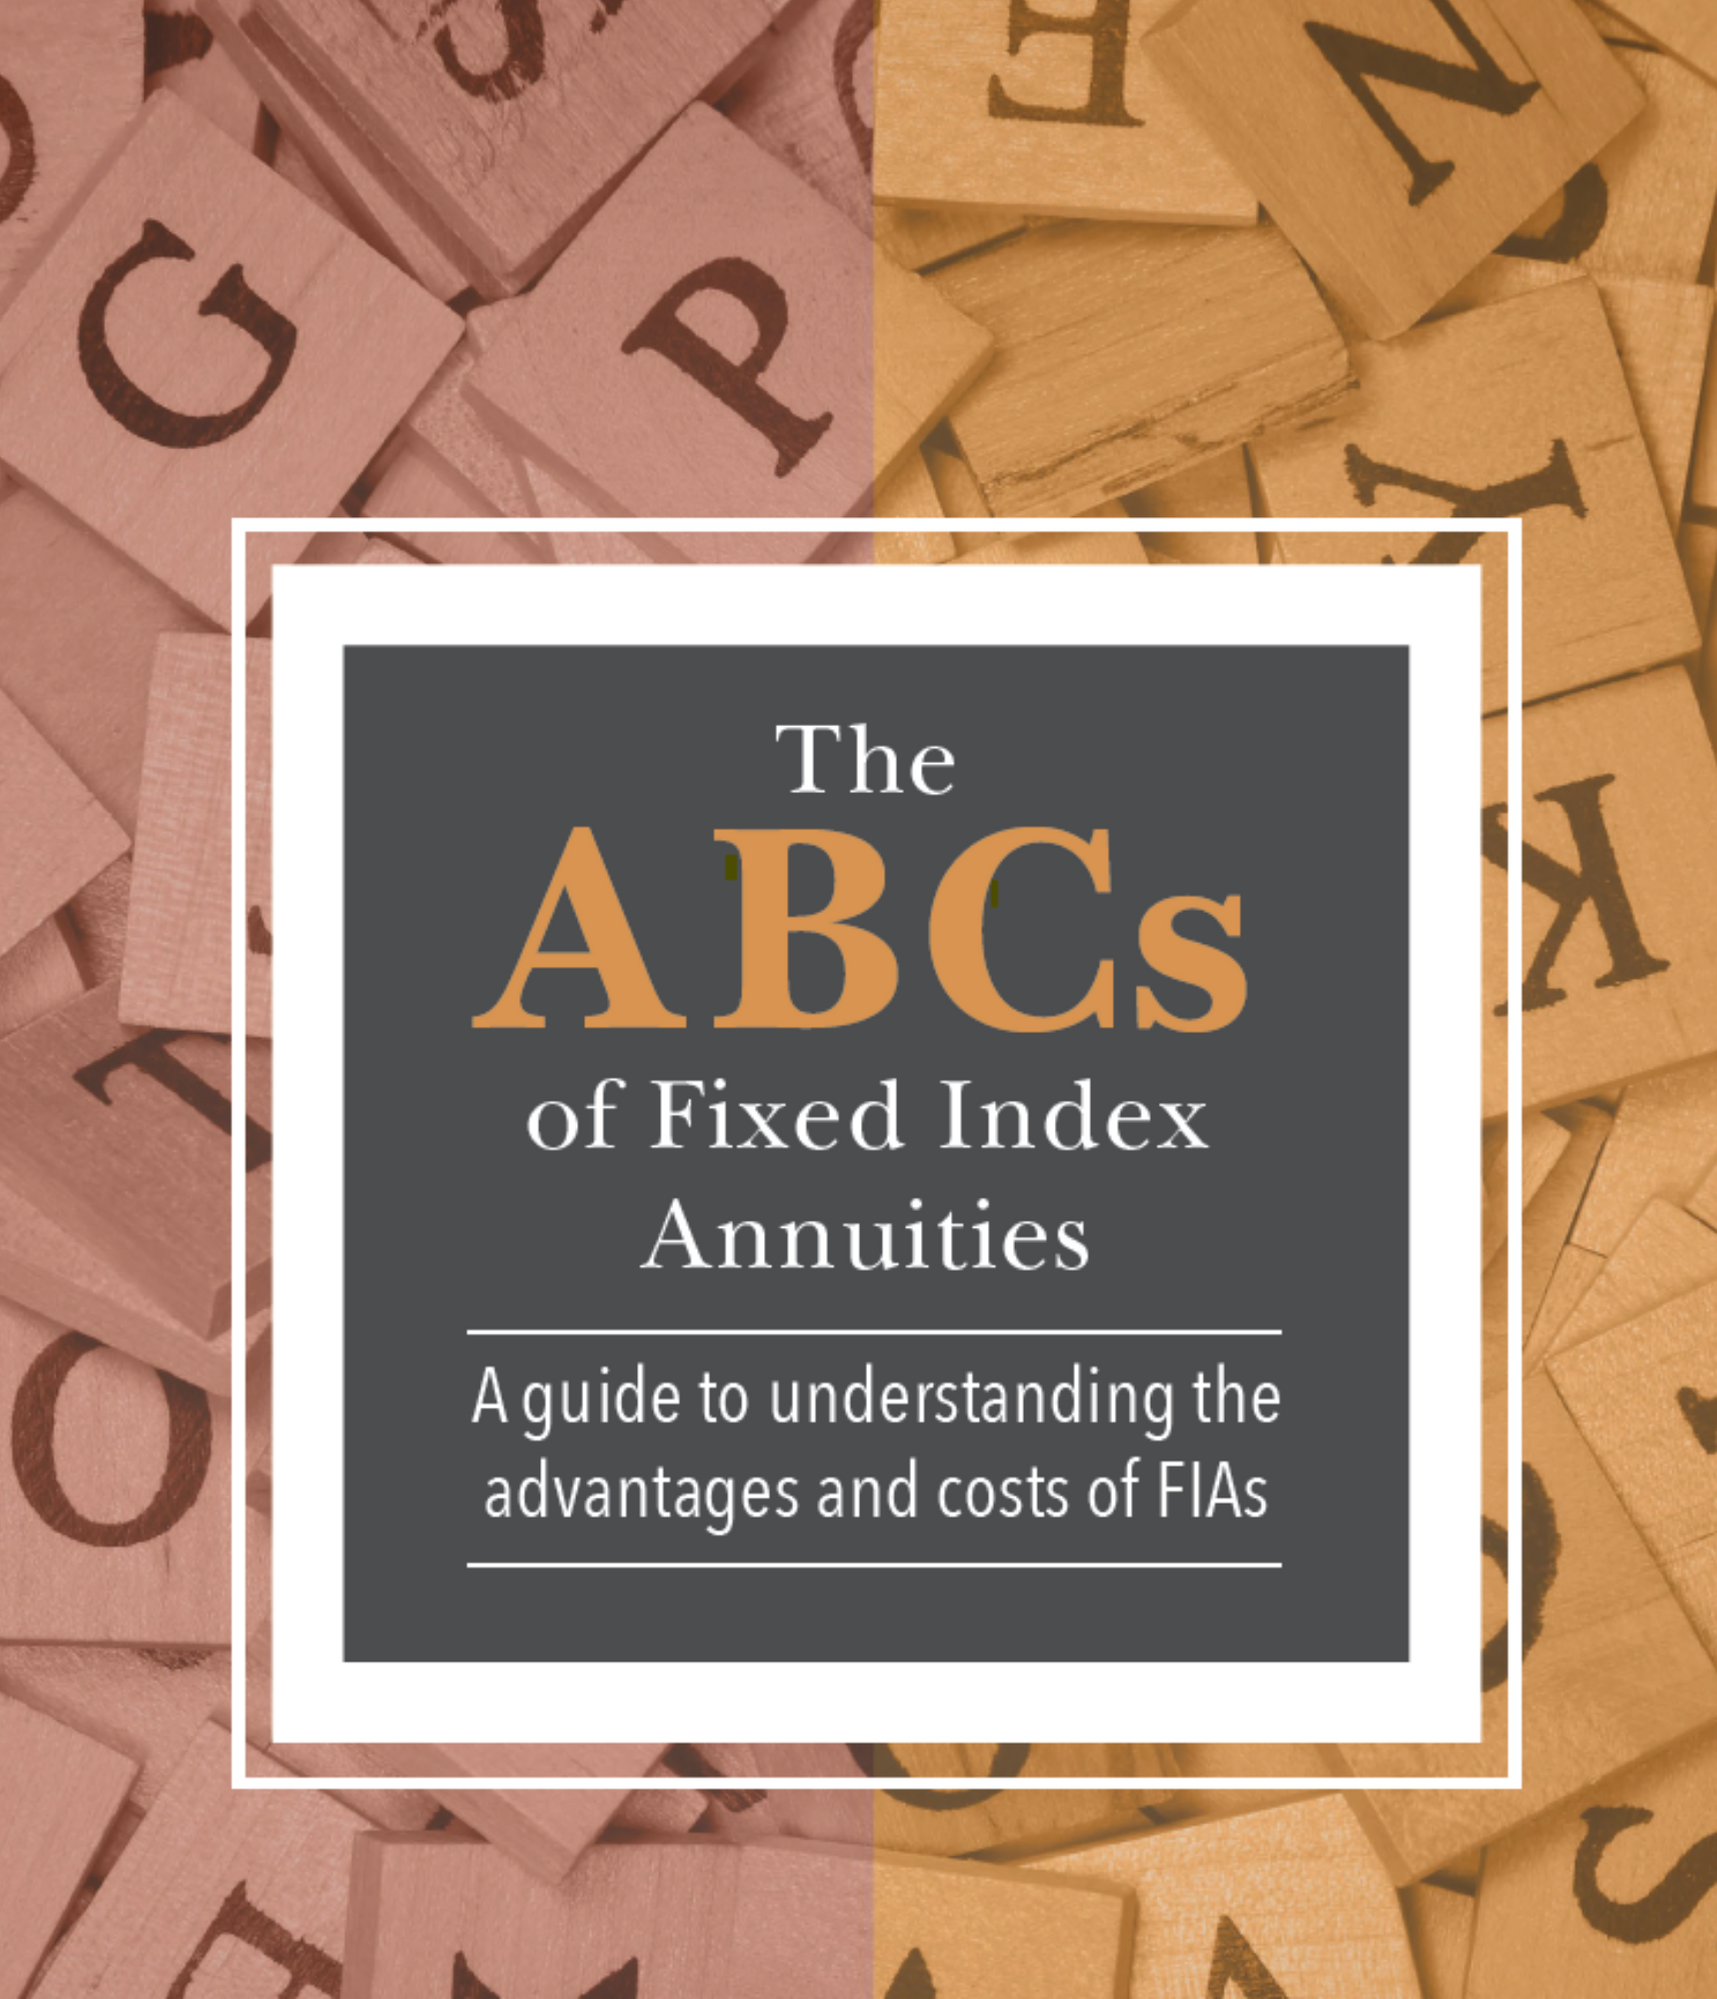 ABCs of Fixed Index Annuities